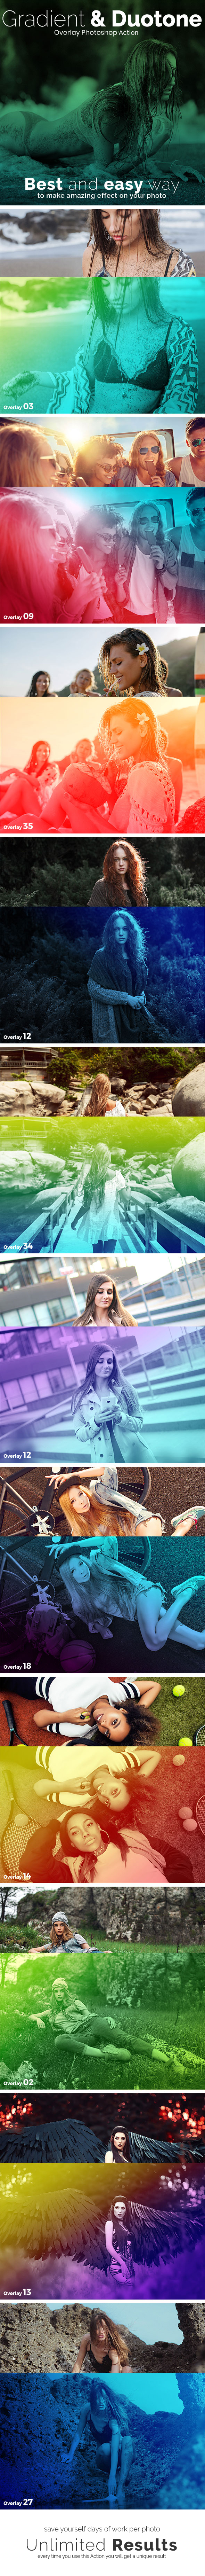 Gradient & Duotone Overlay Photoshop Action - Photo Effects Actions